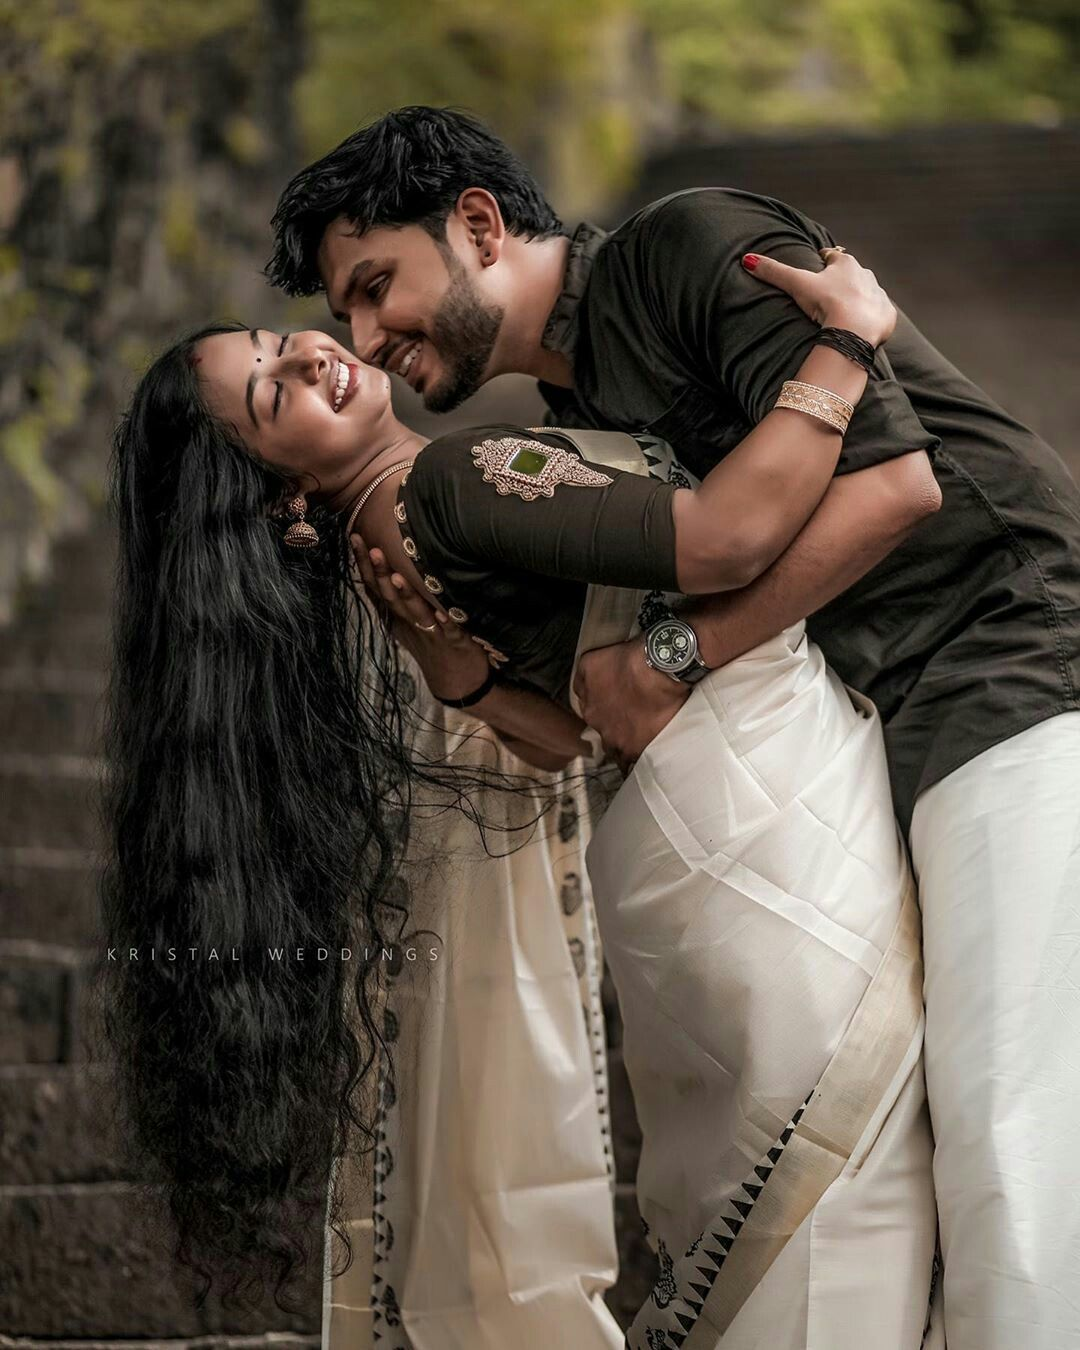 Pin By Annigsheela On Couple Photoshoot Cute Couples Photography Wedding Couple Poses Photography Wedding Photoshoot Poses Download and use 10,000+ couple photoshoot stock photos for free. pin by annigsheela on couple photoshoot